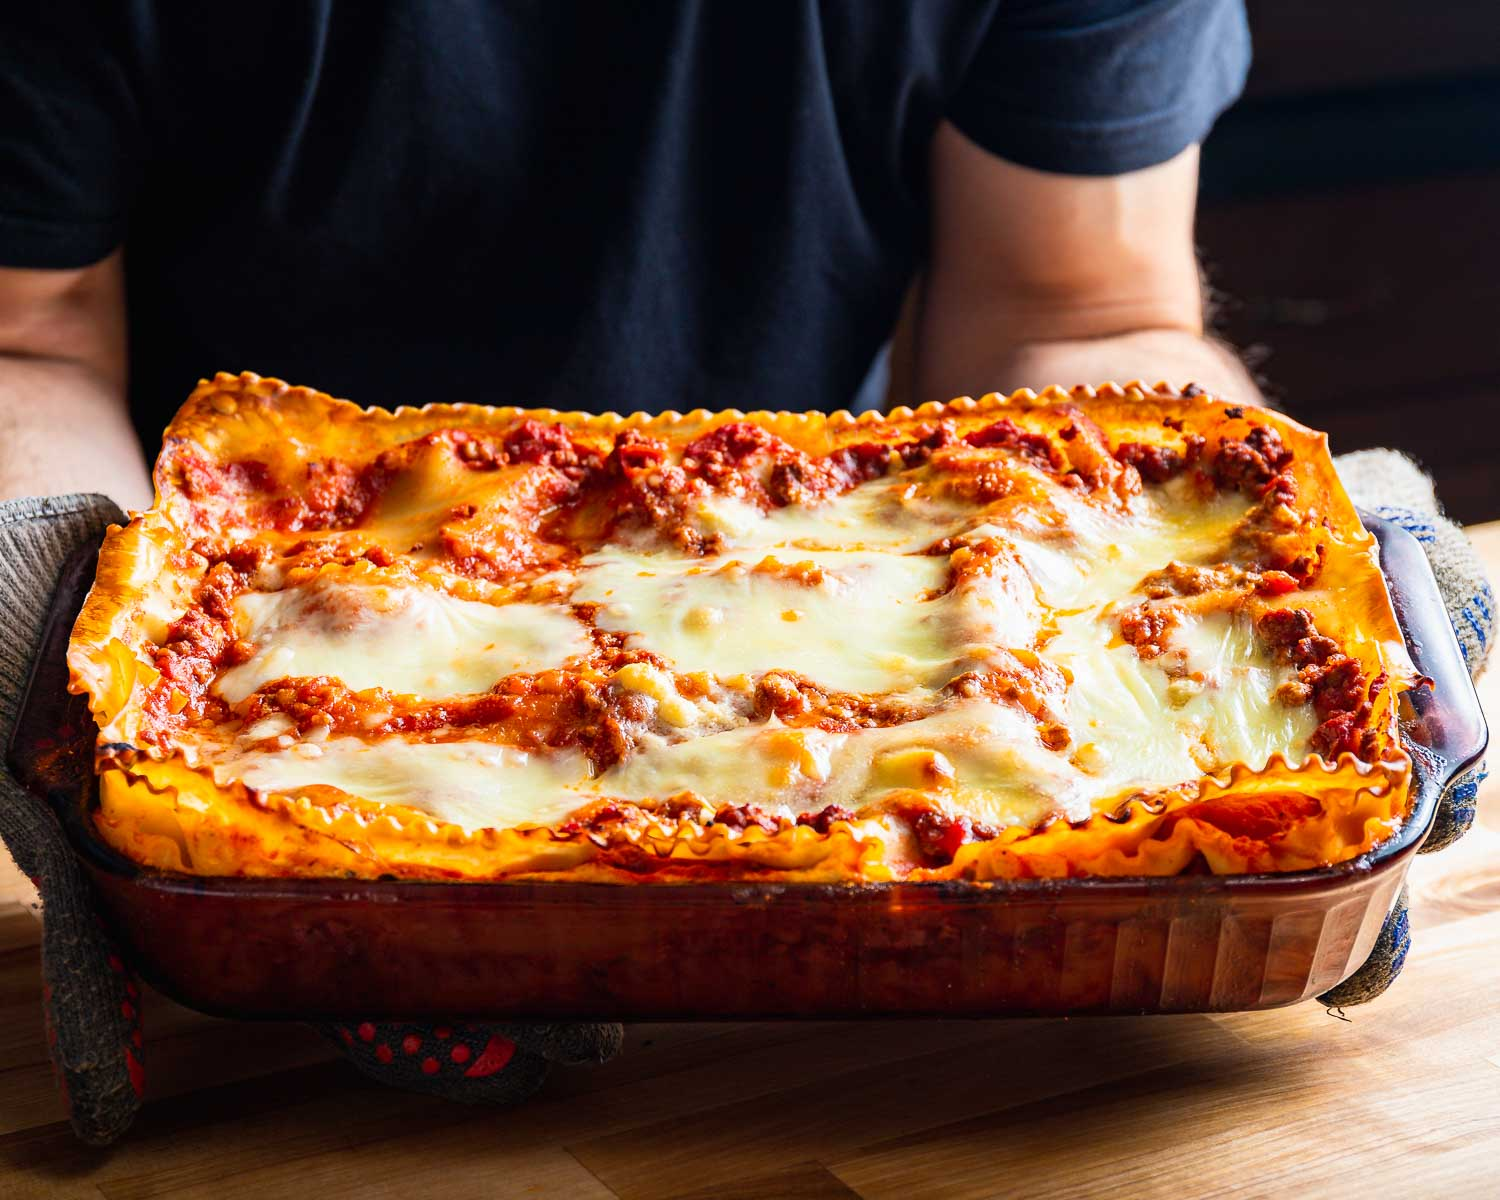 Tray of lasagna being held with gloves.